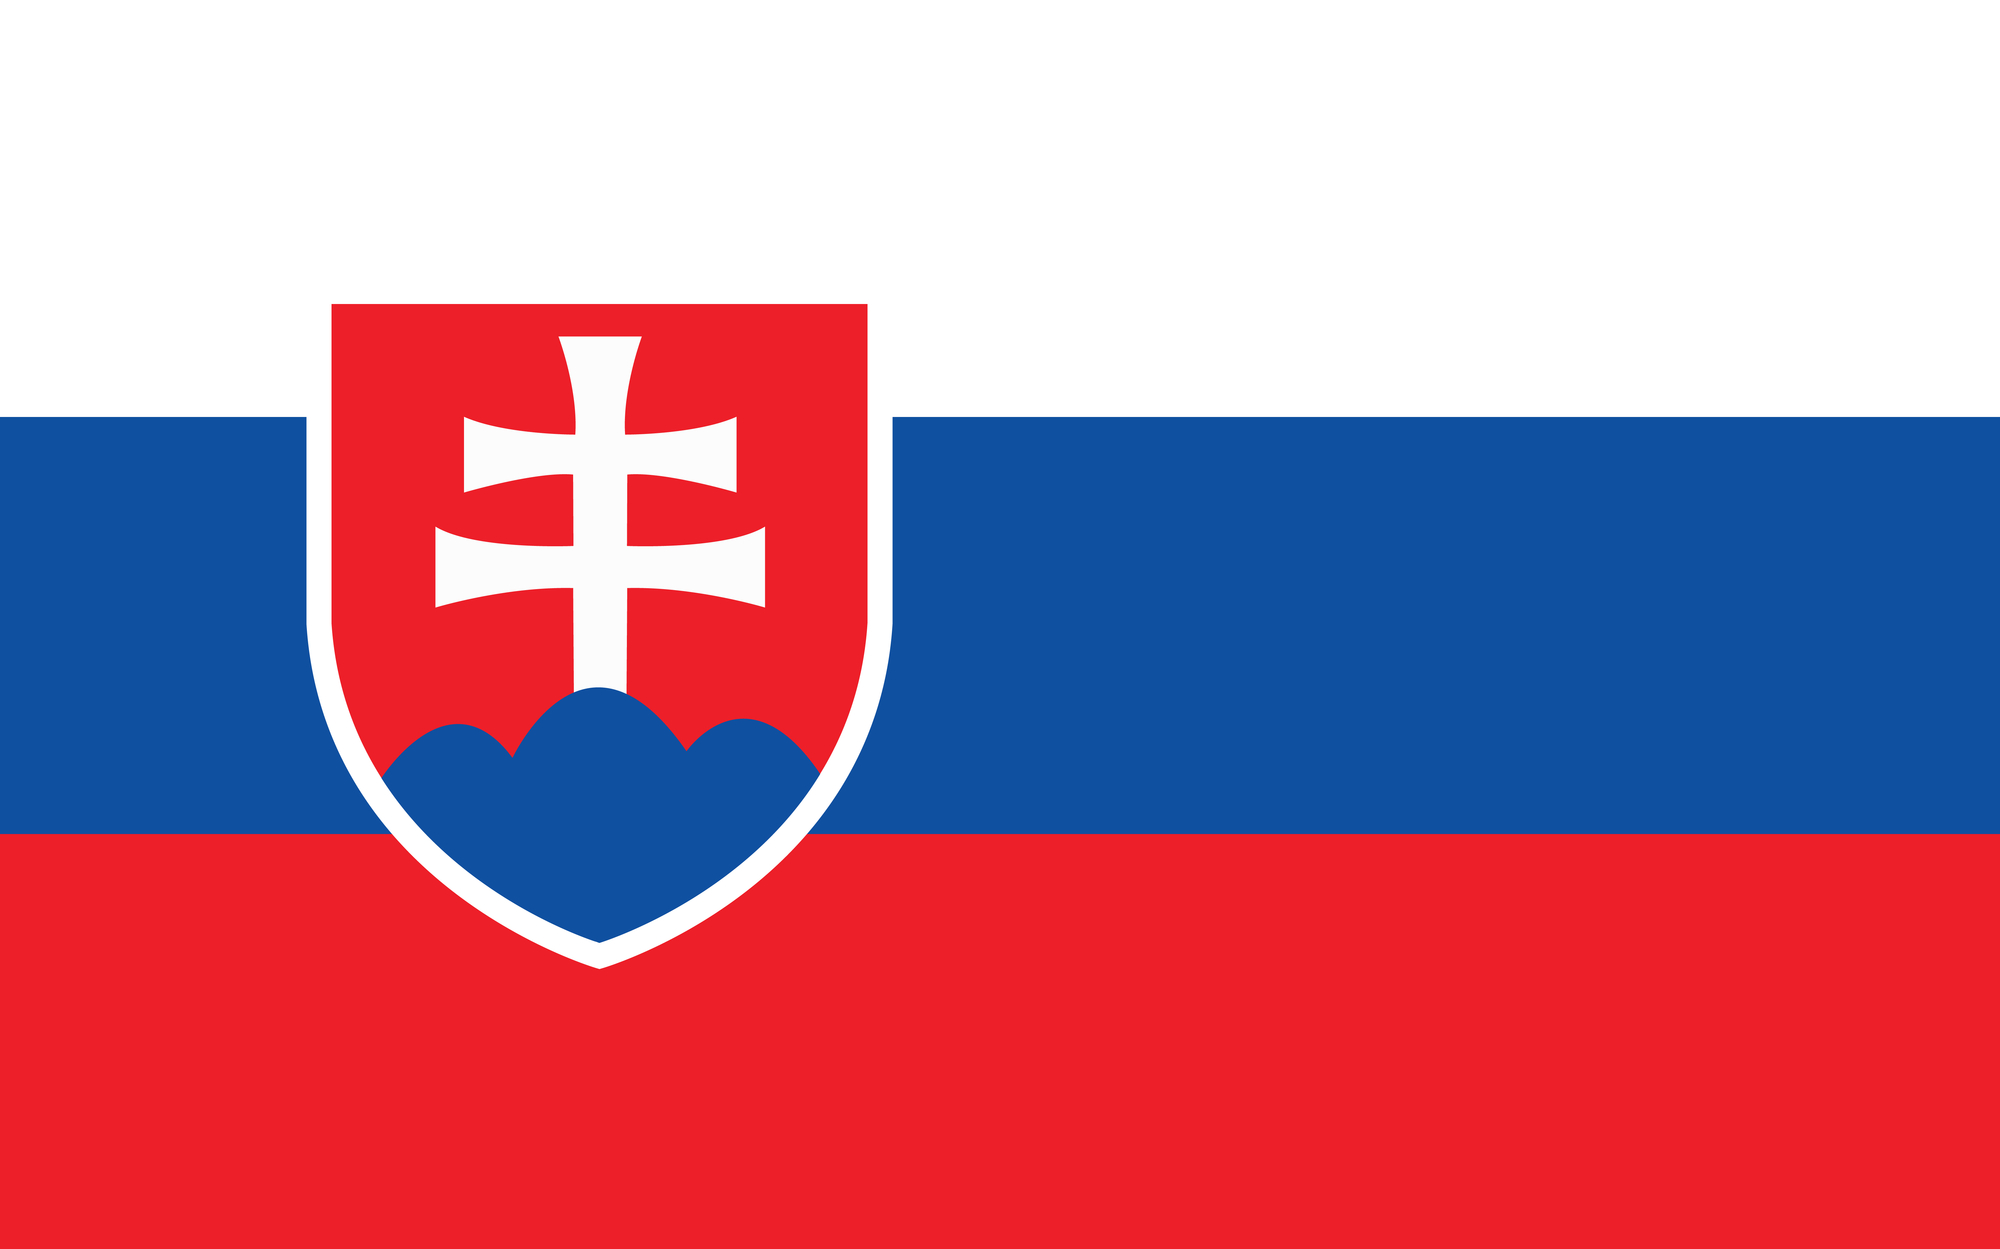 The Slovakian flag: The Colors, History, and Meaning